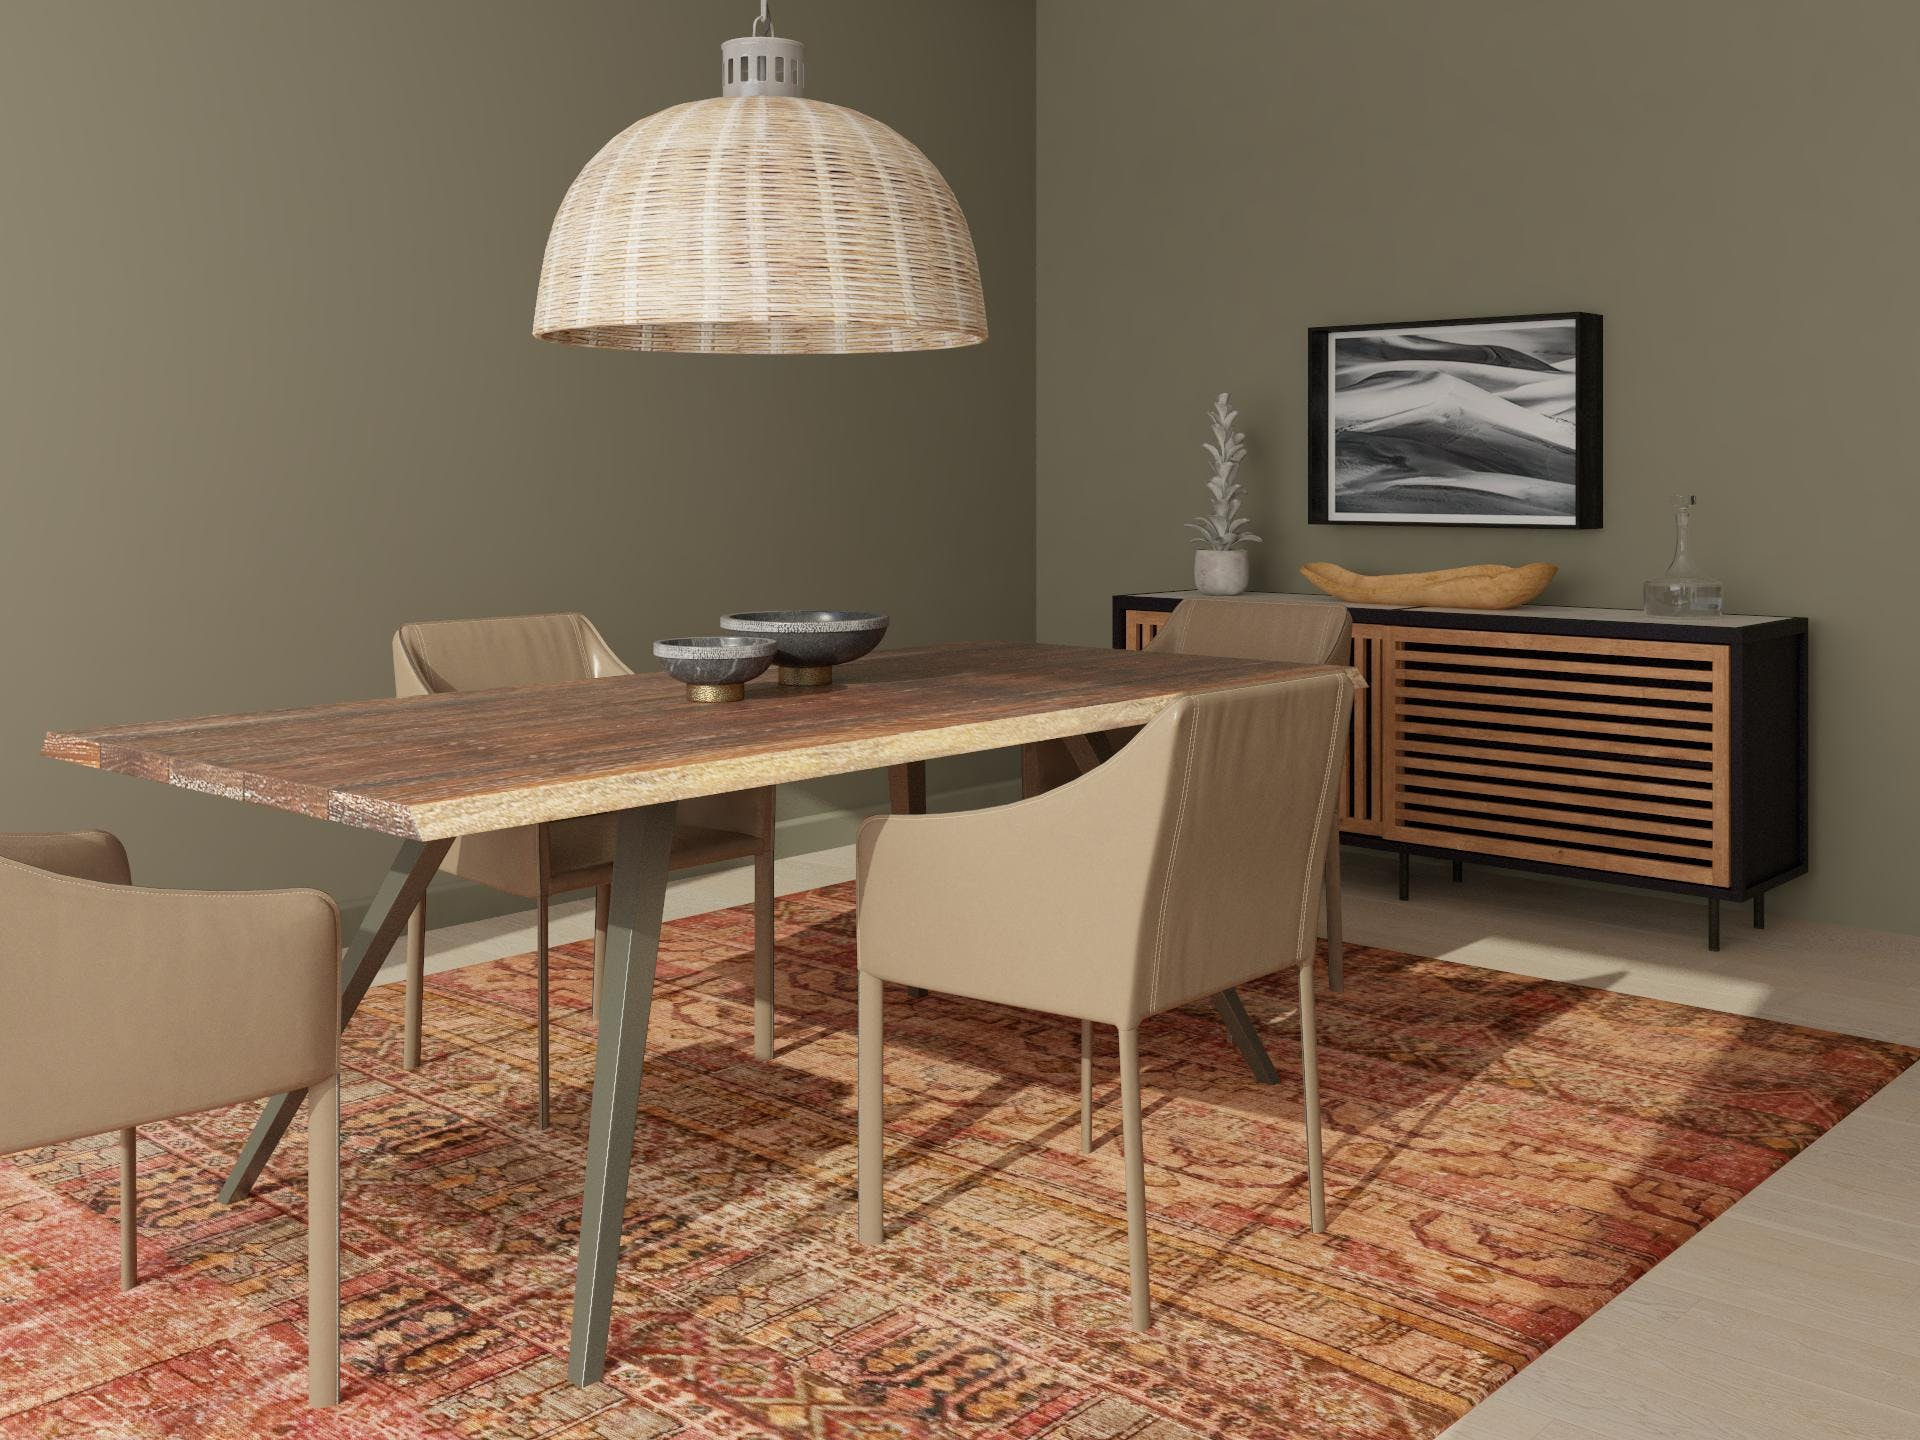 Stylish and Inviting Dining Room